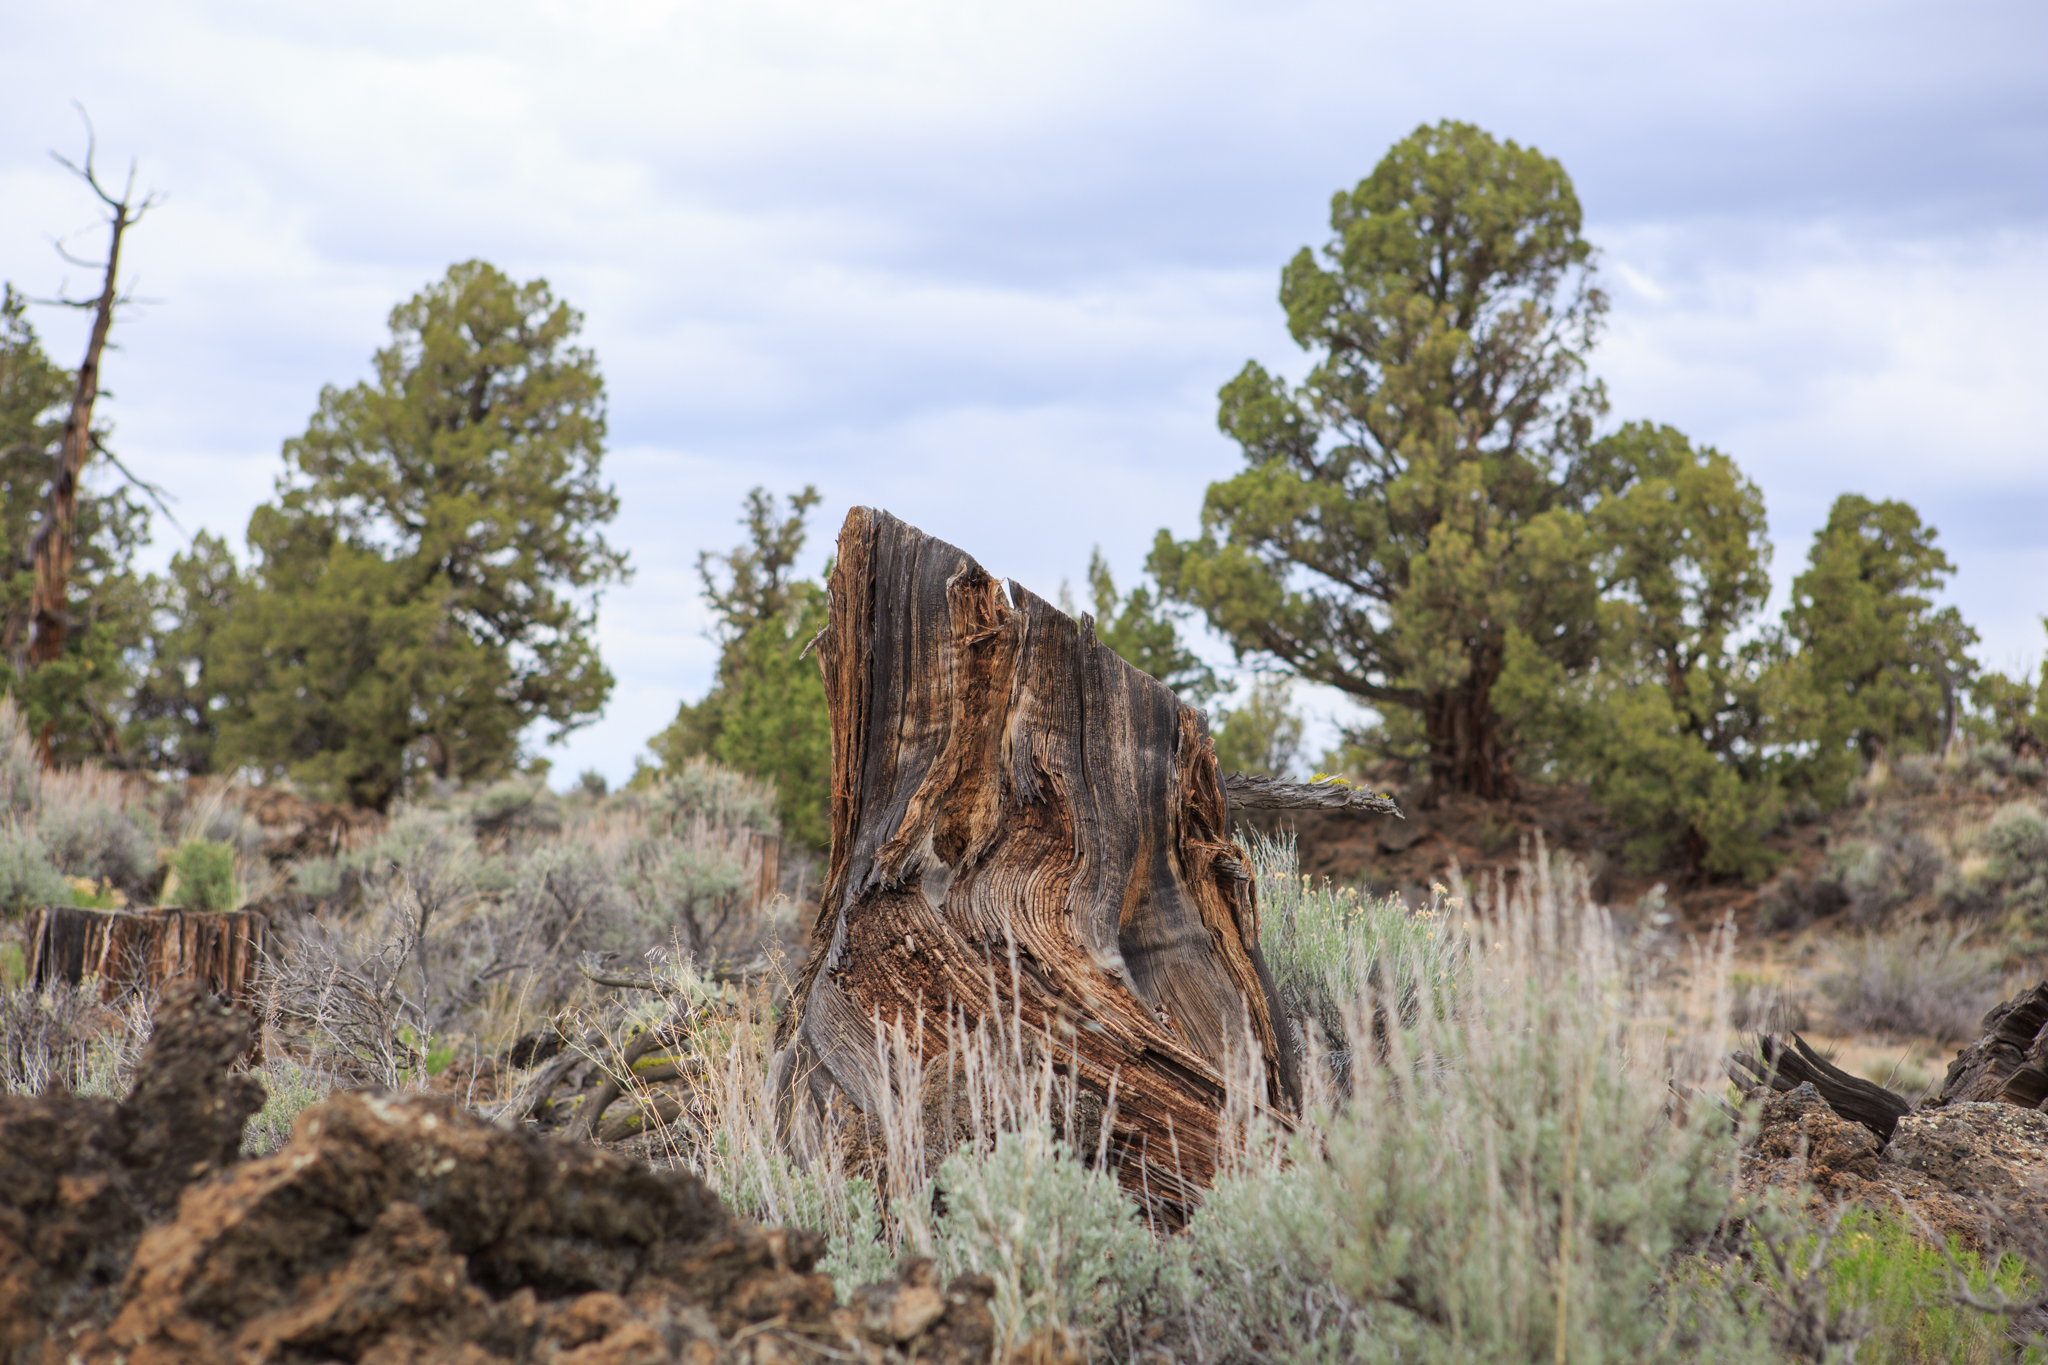 Before the Badlands was designated a protected wilderness area, old-growth junipers were frequently cut down for furniture and other decorative pieces. Their stumps remain scattered throughout the wilderness.